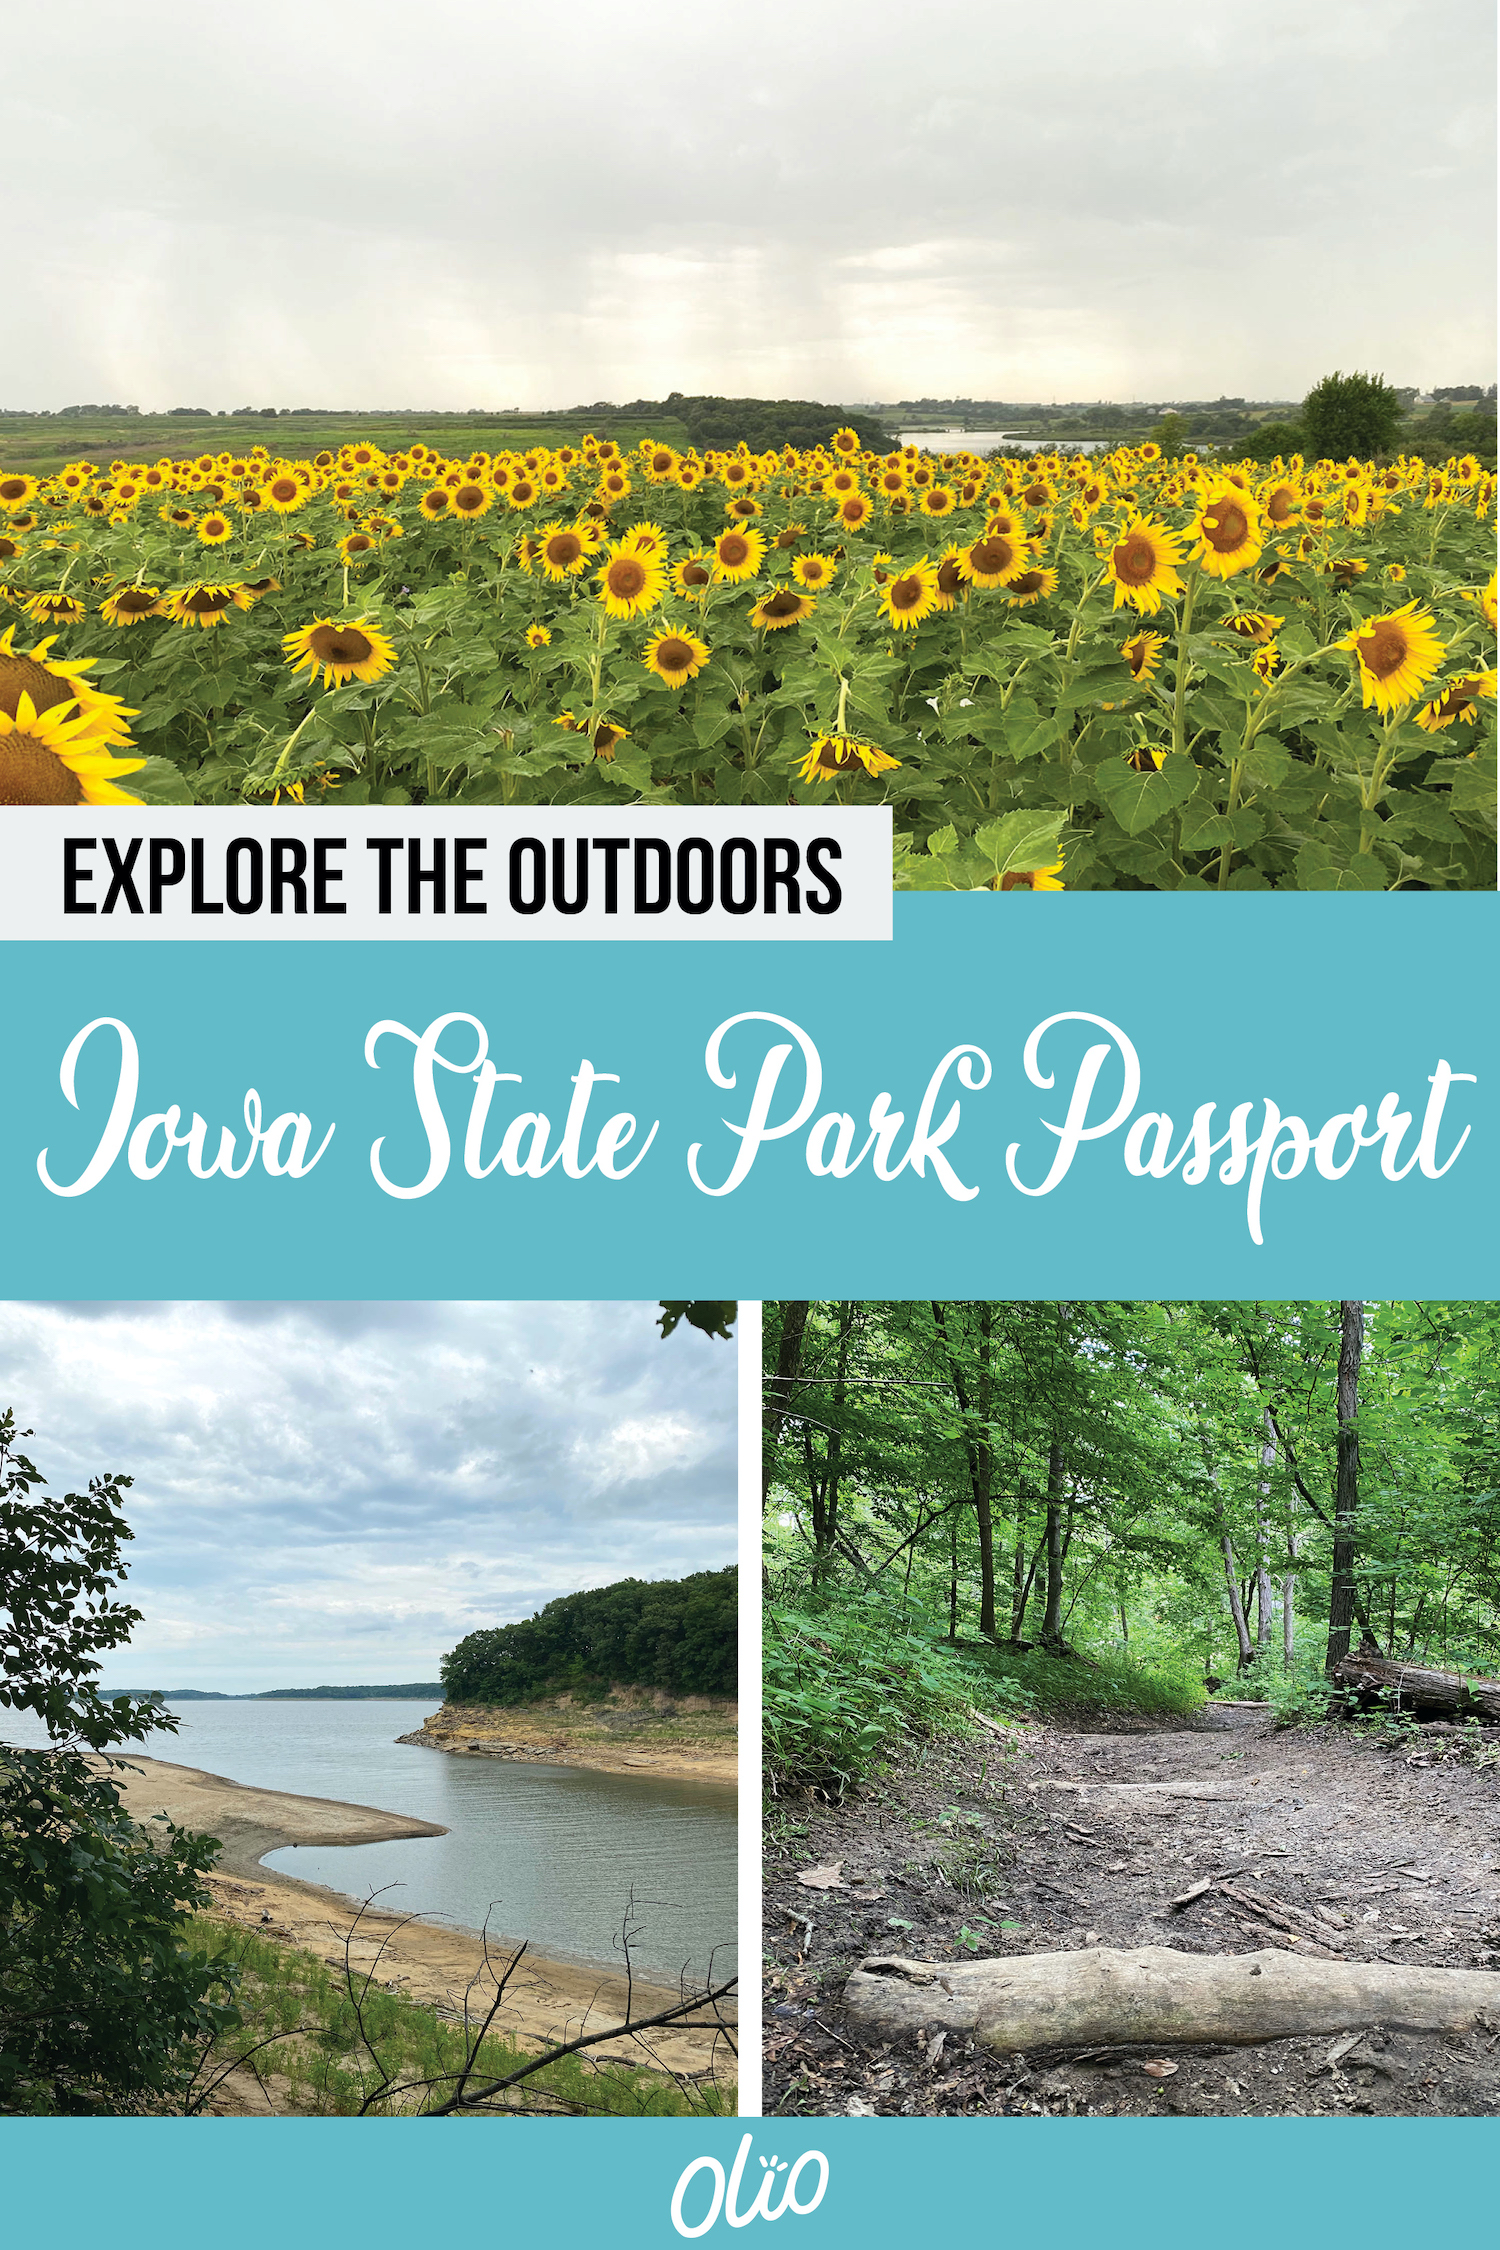 Looking for a way to explore the outdoors this summer? Look no further than the Iowa State Parks Passport program! Find outdoor spaces around the state and check in virtually for the chance to the Grand Prize. Need suggestions of Iowa State Parks to visit? I've got you covered! #Iowa #TravelIowa